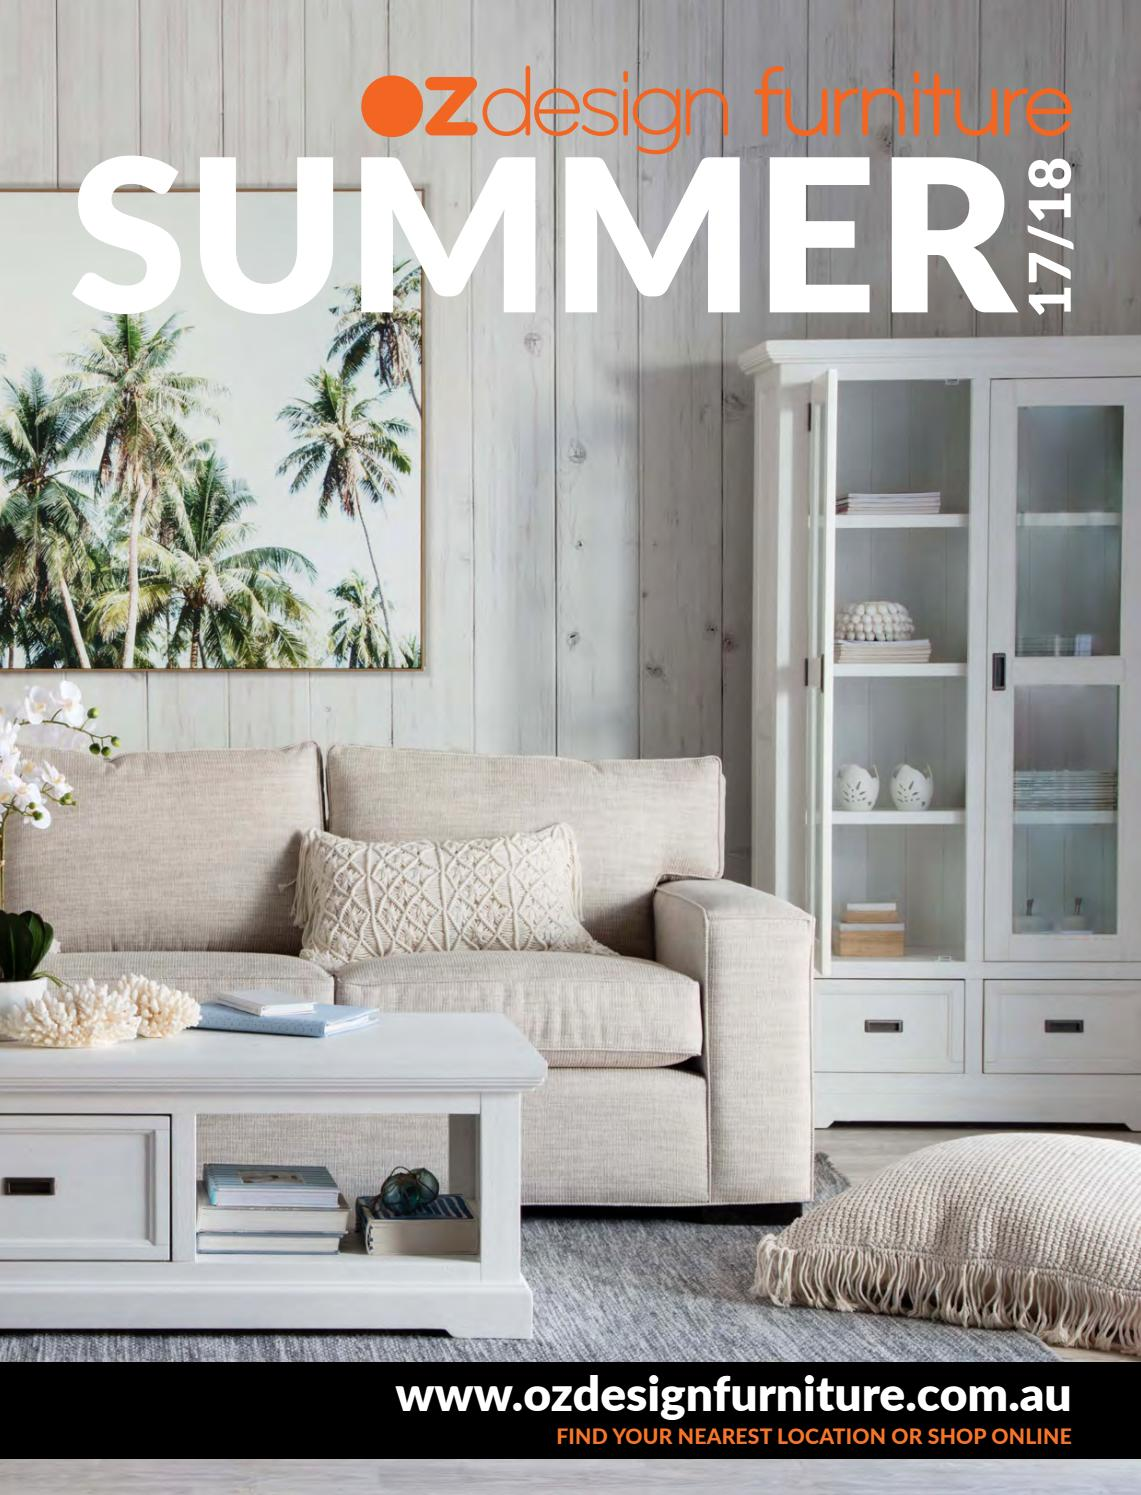 ashton sofa oz design innovation sofas furniture summer 17 18 directory by